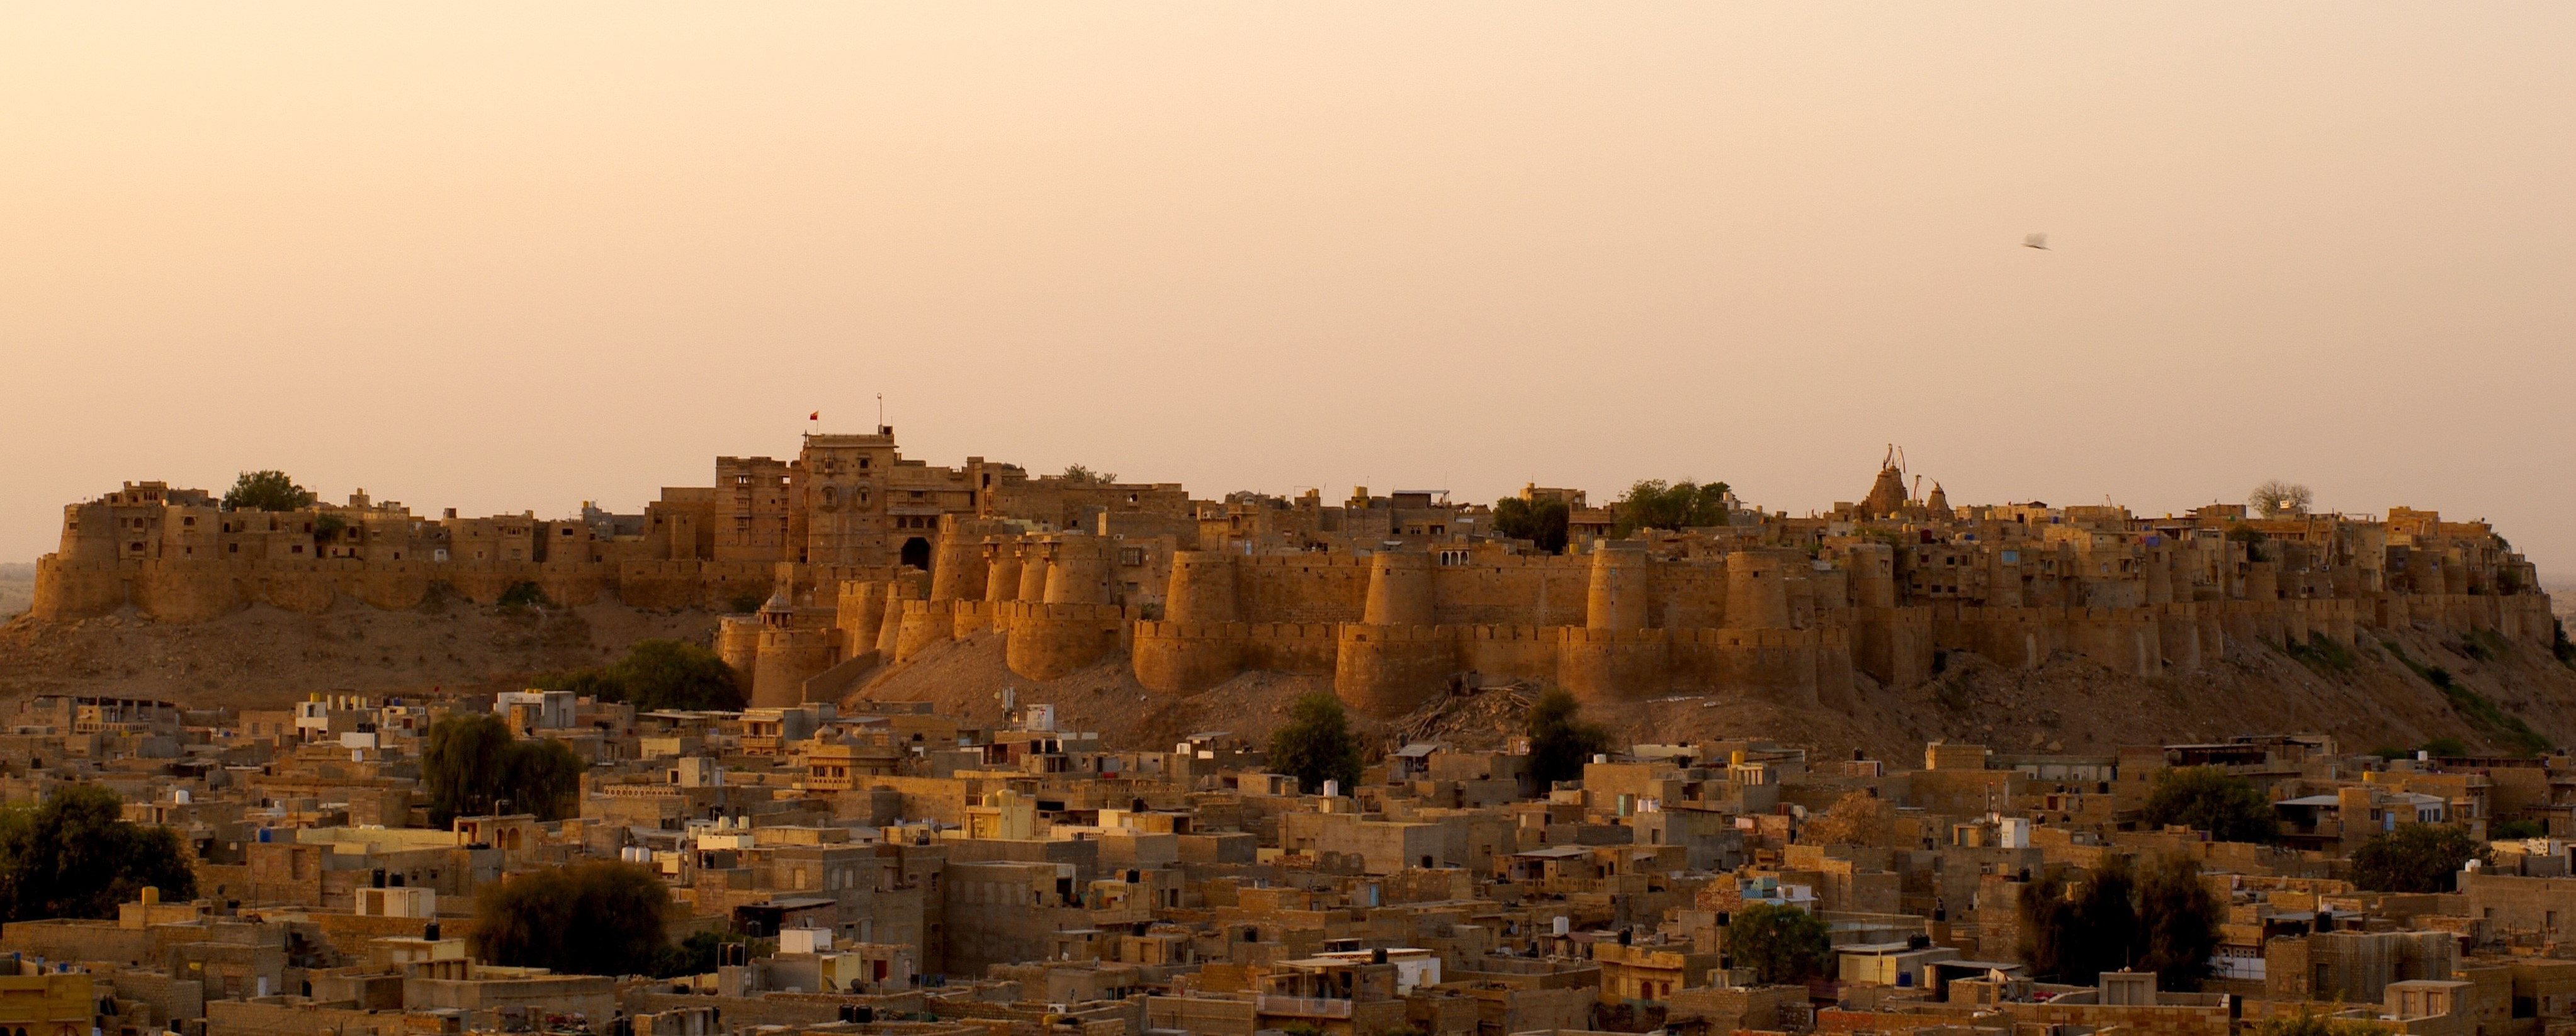 The desert city of Jaisalmer | Media India Group